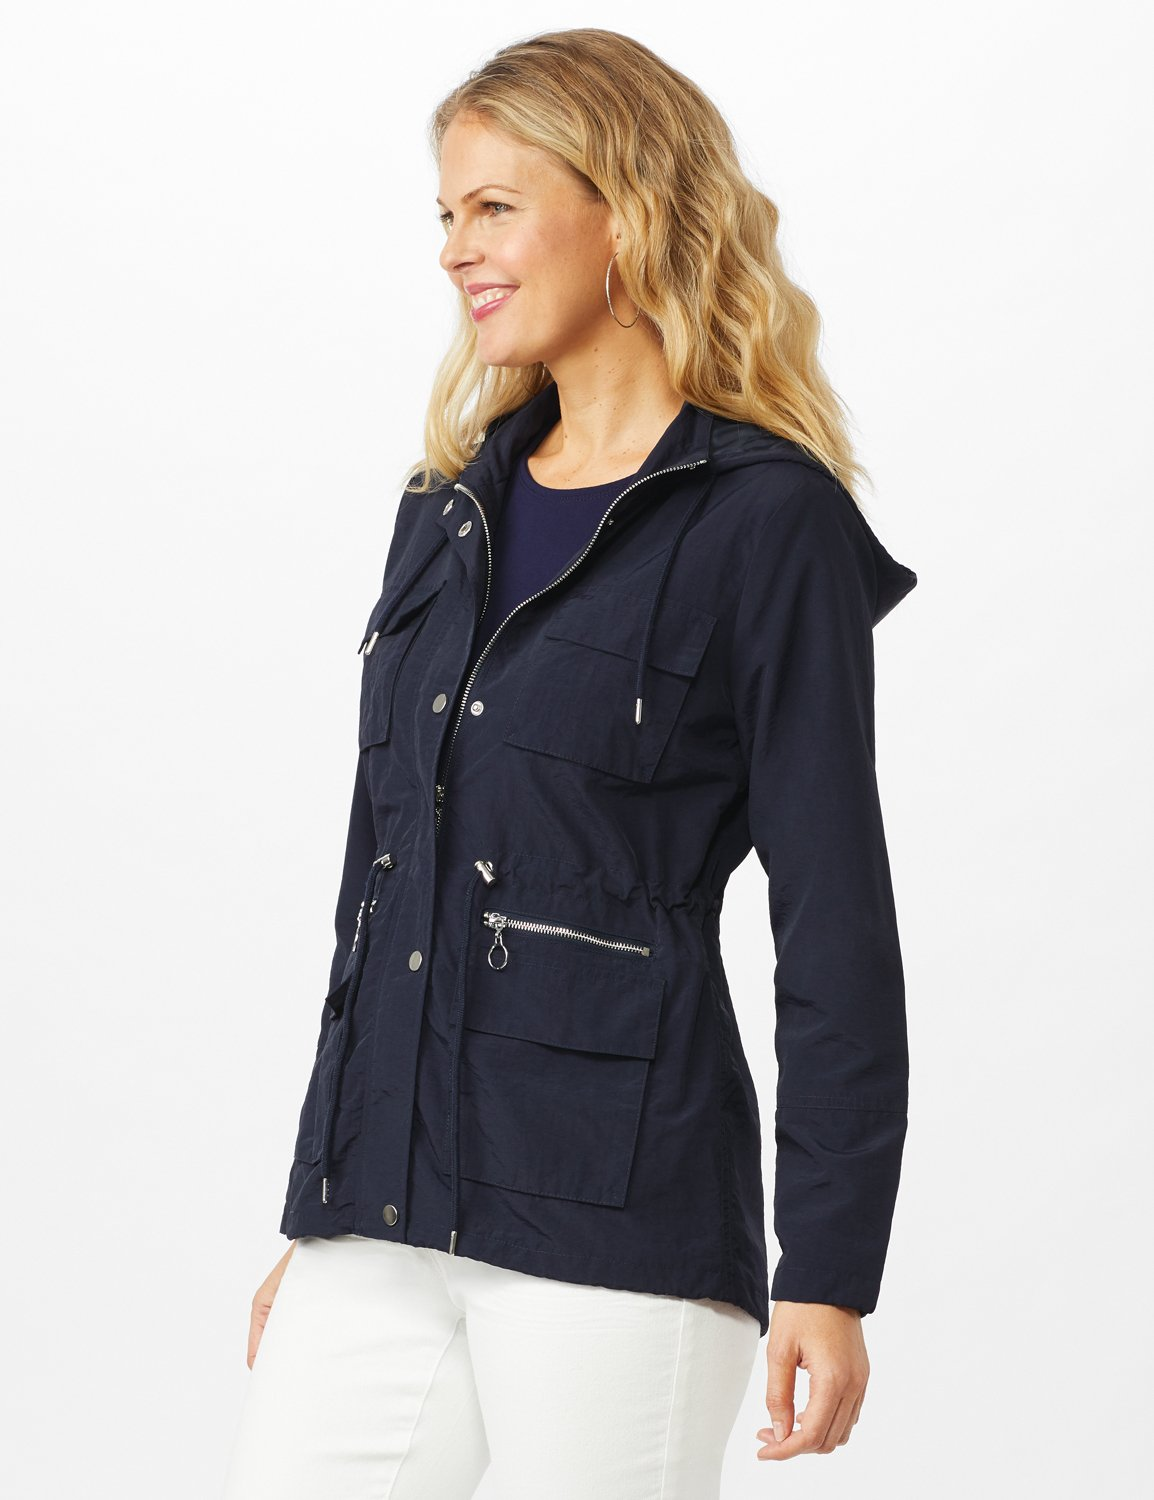 Dry Nylon Hooded Zip Front Utility Jacket with 4 Cargo Pockets and Drawcord - Navy - Alternate Image